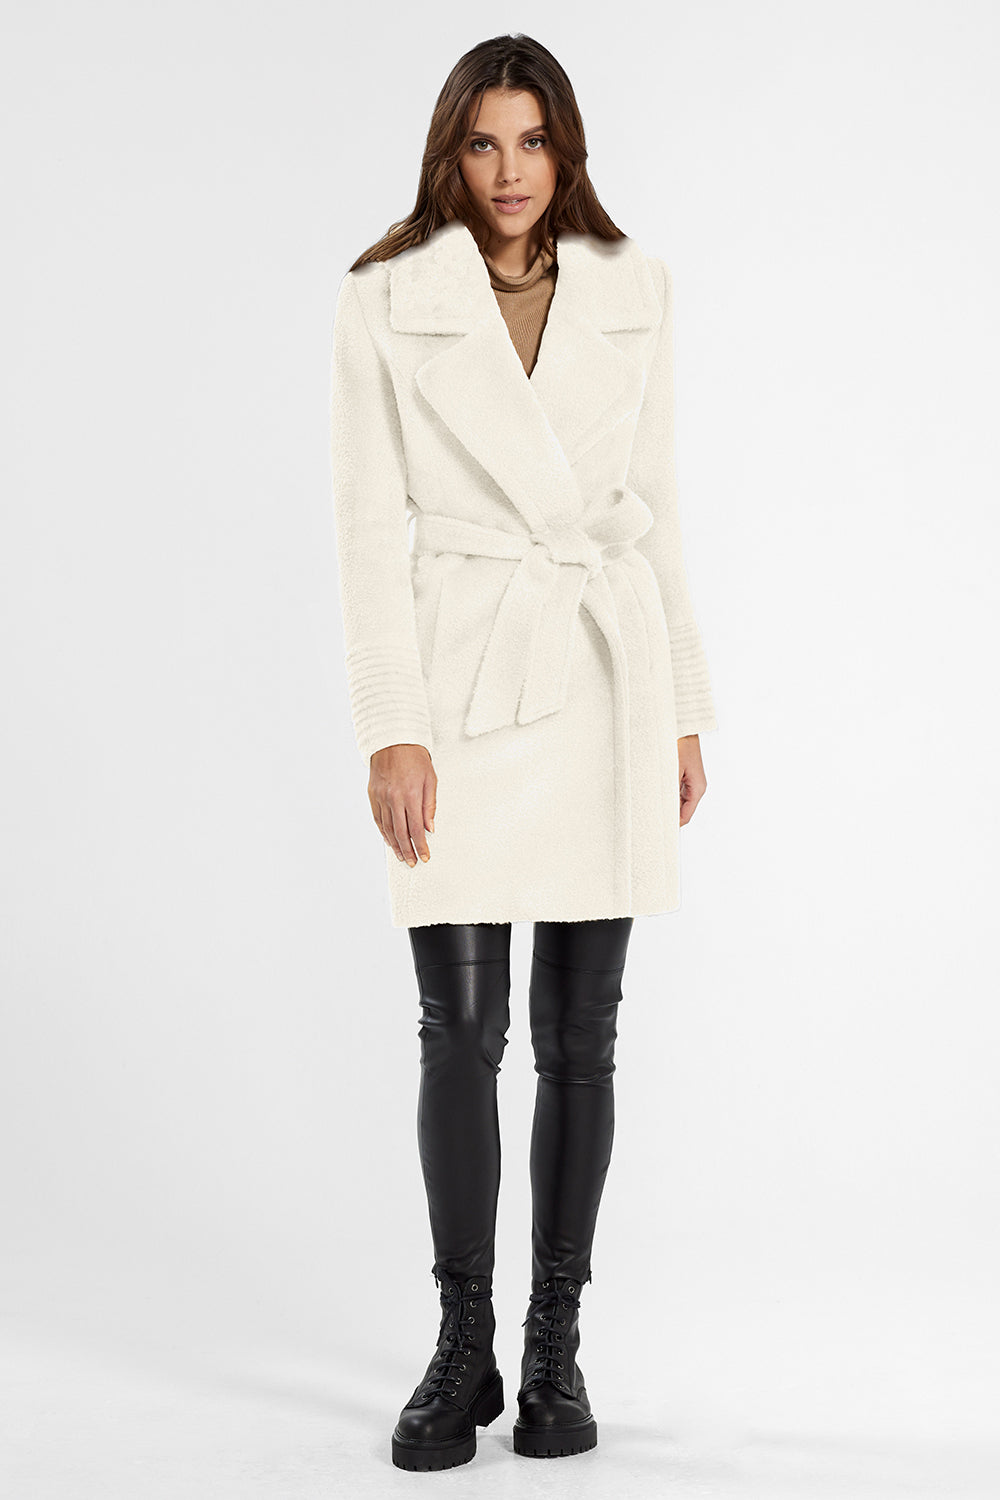 Sentaler Bouclé Alpaca Mid Length Notched Collar Wrap Coat featured in Bouclé Alpaca and available in Ivory. Seen from front.